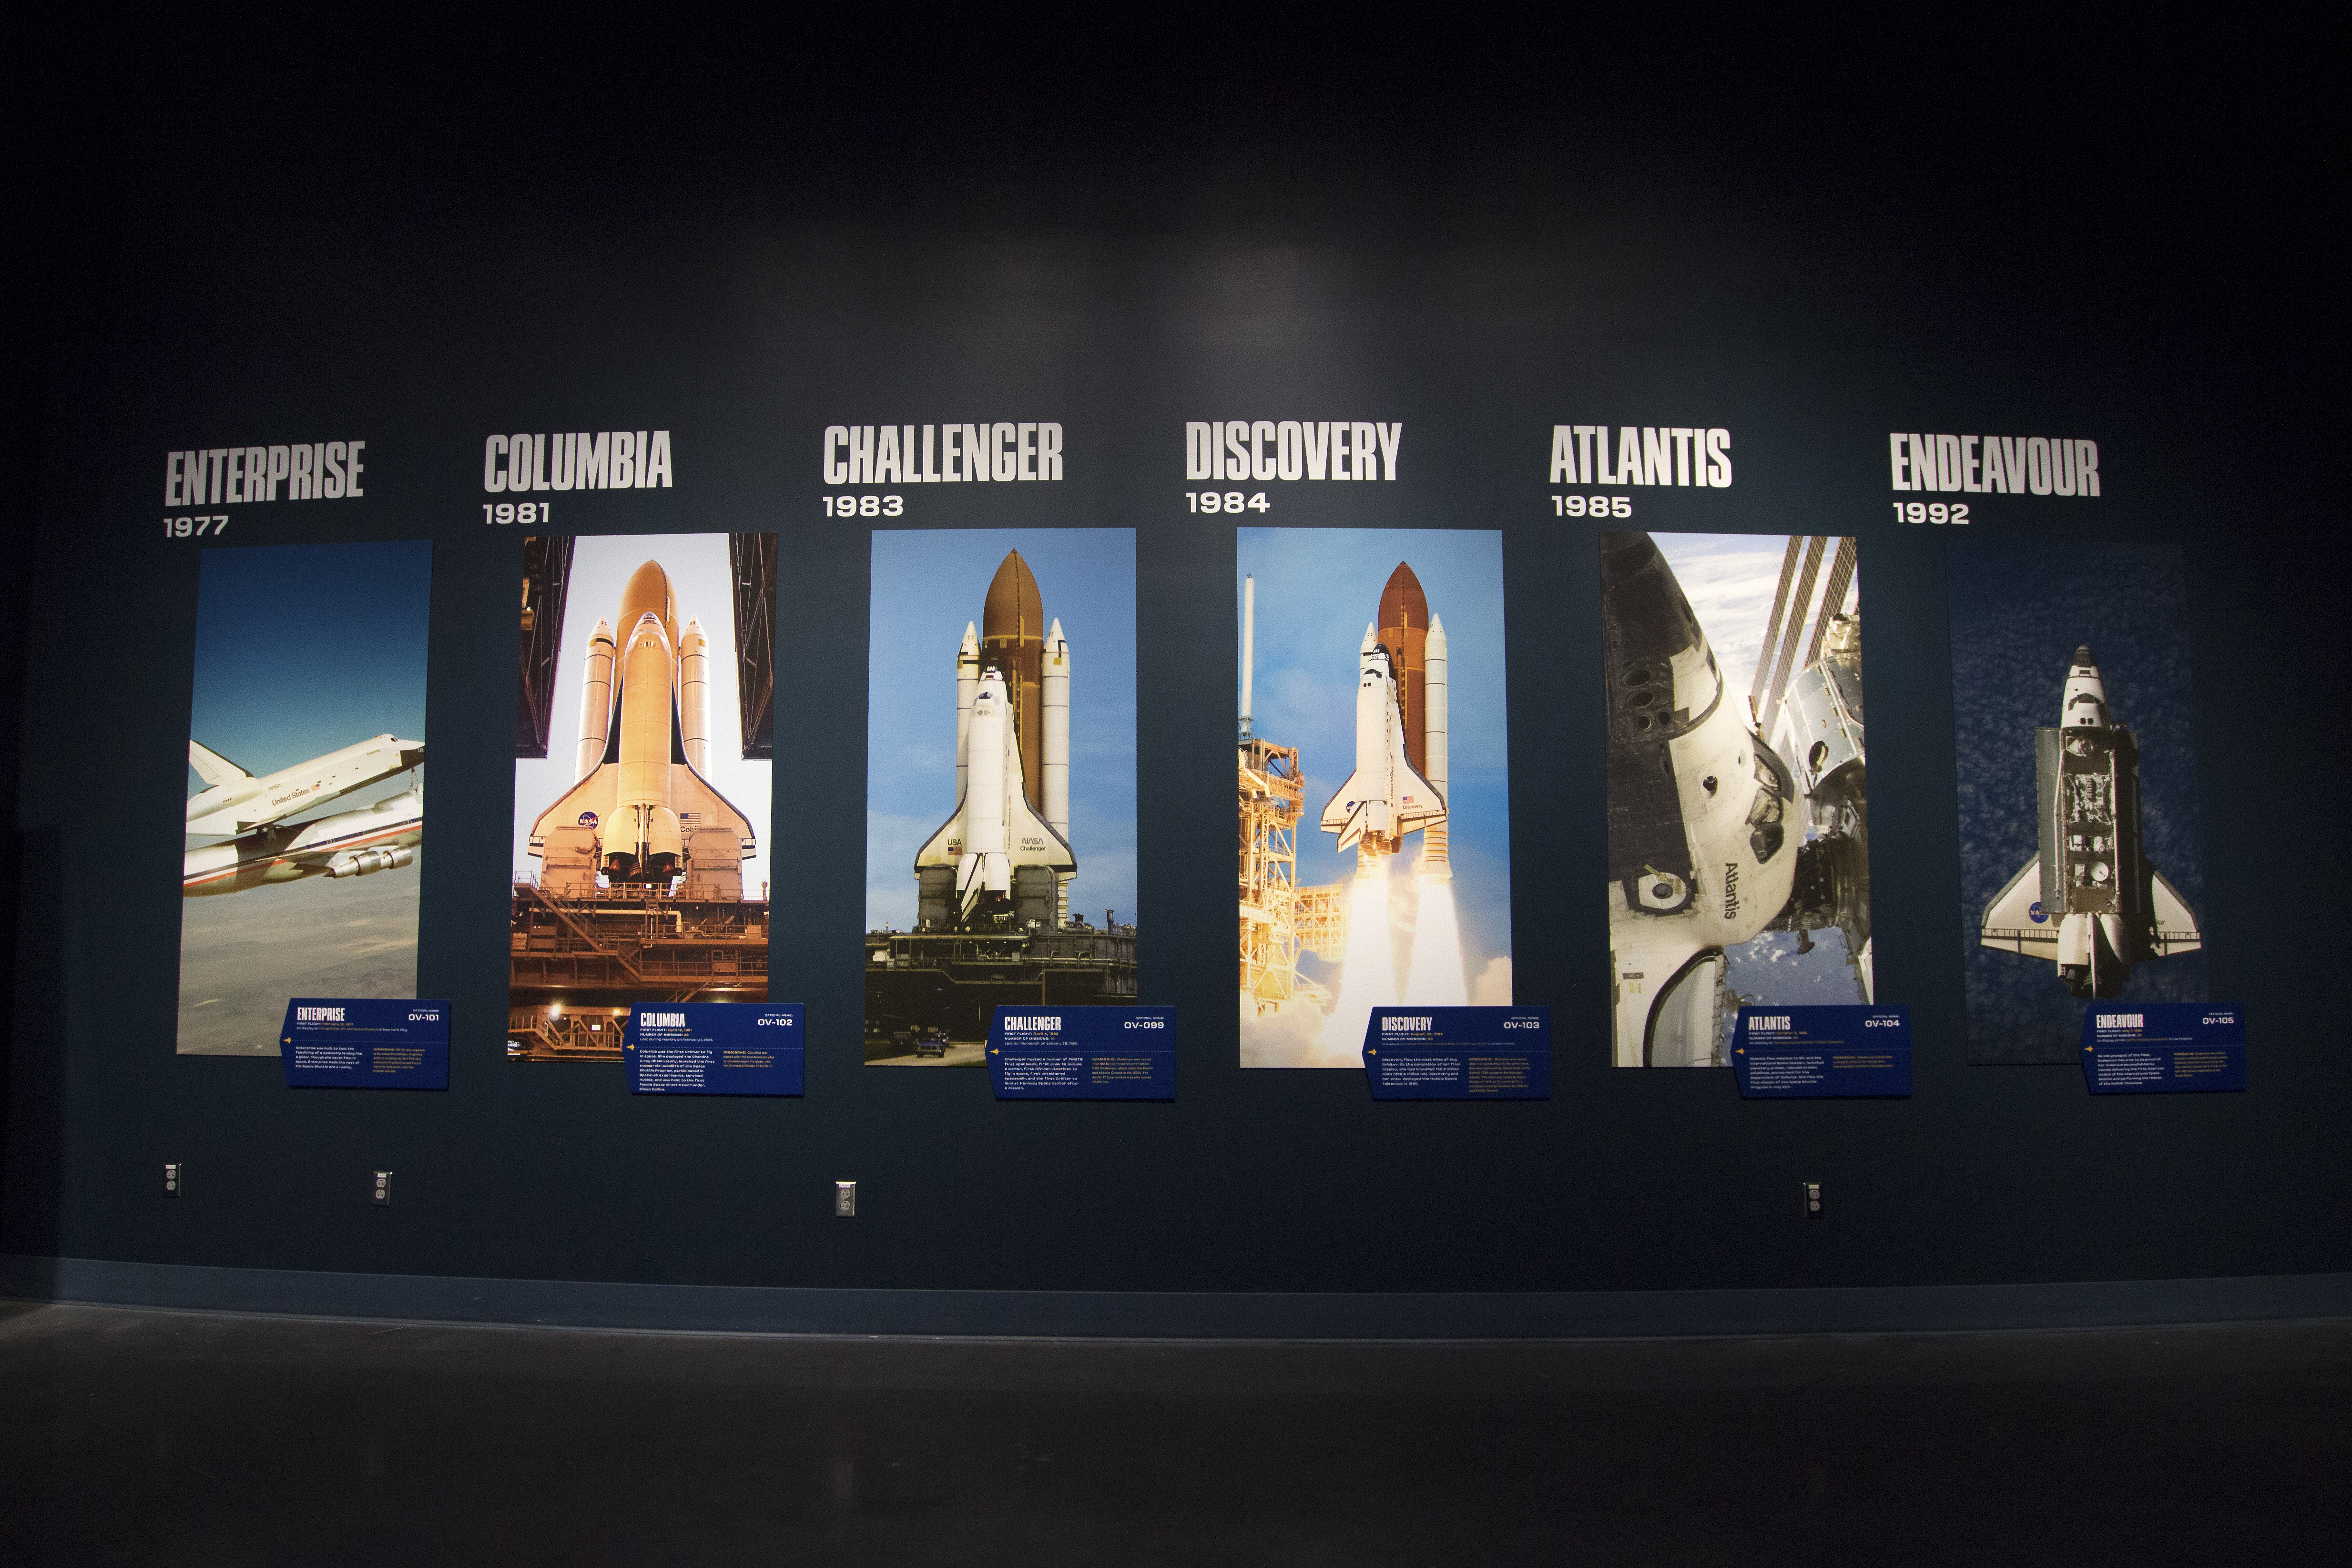 space shuttle atlantis enterprise and discovery exhibits